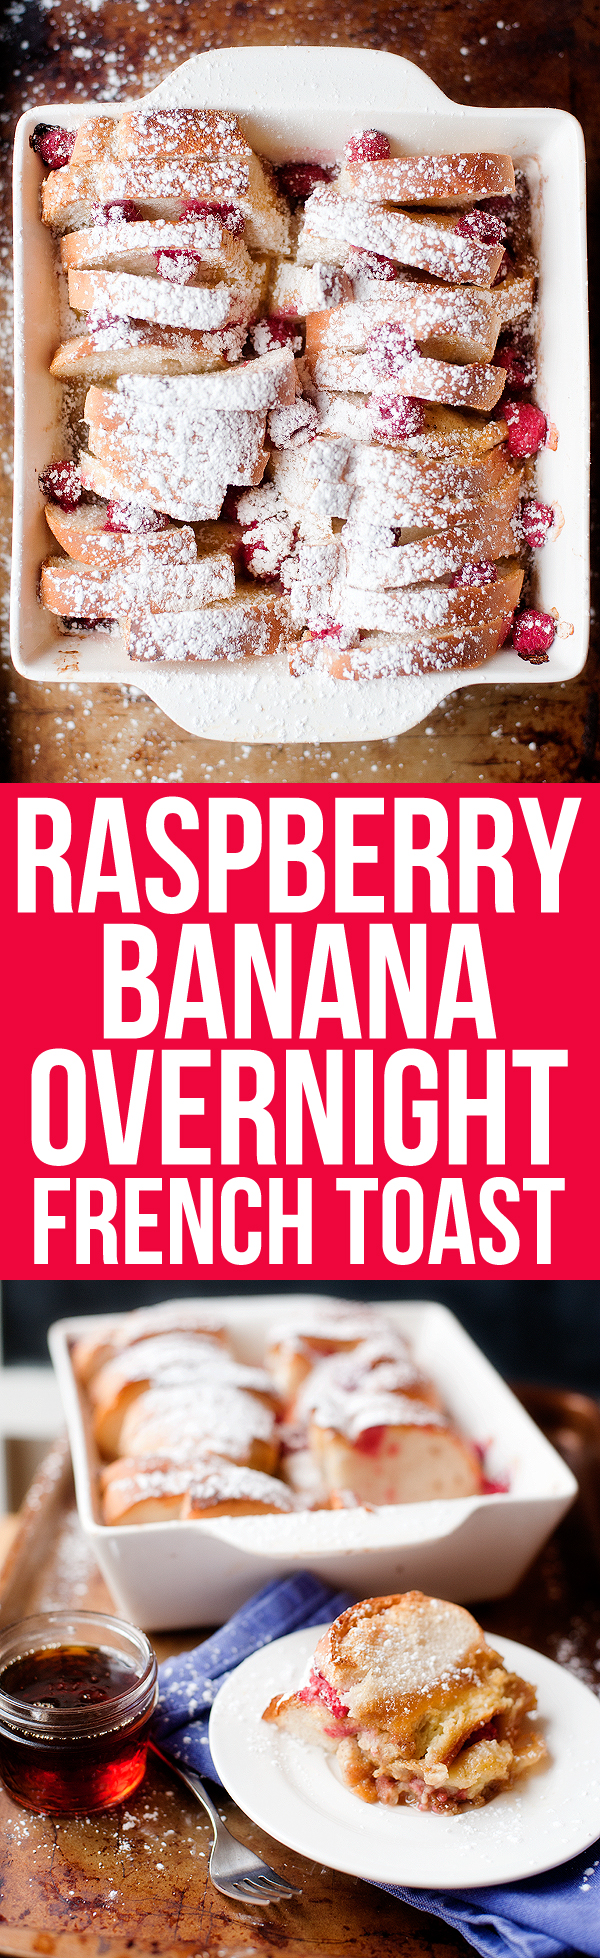 Raspberry Banana French Toast